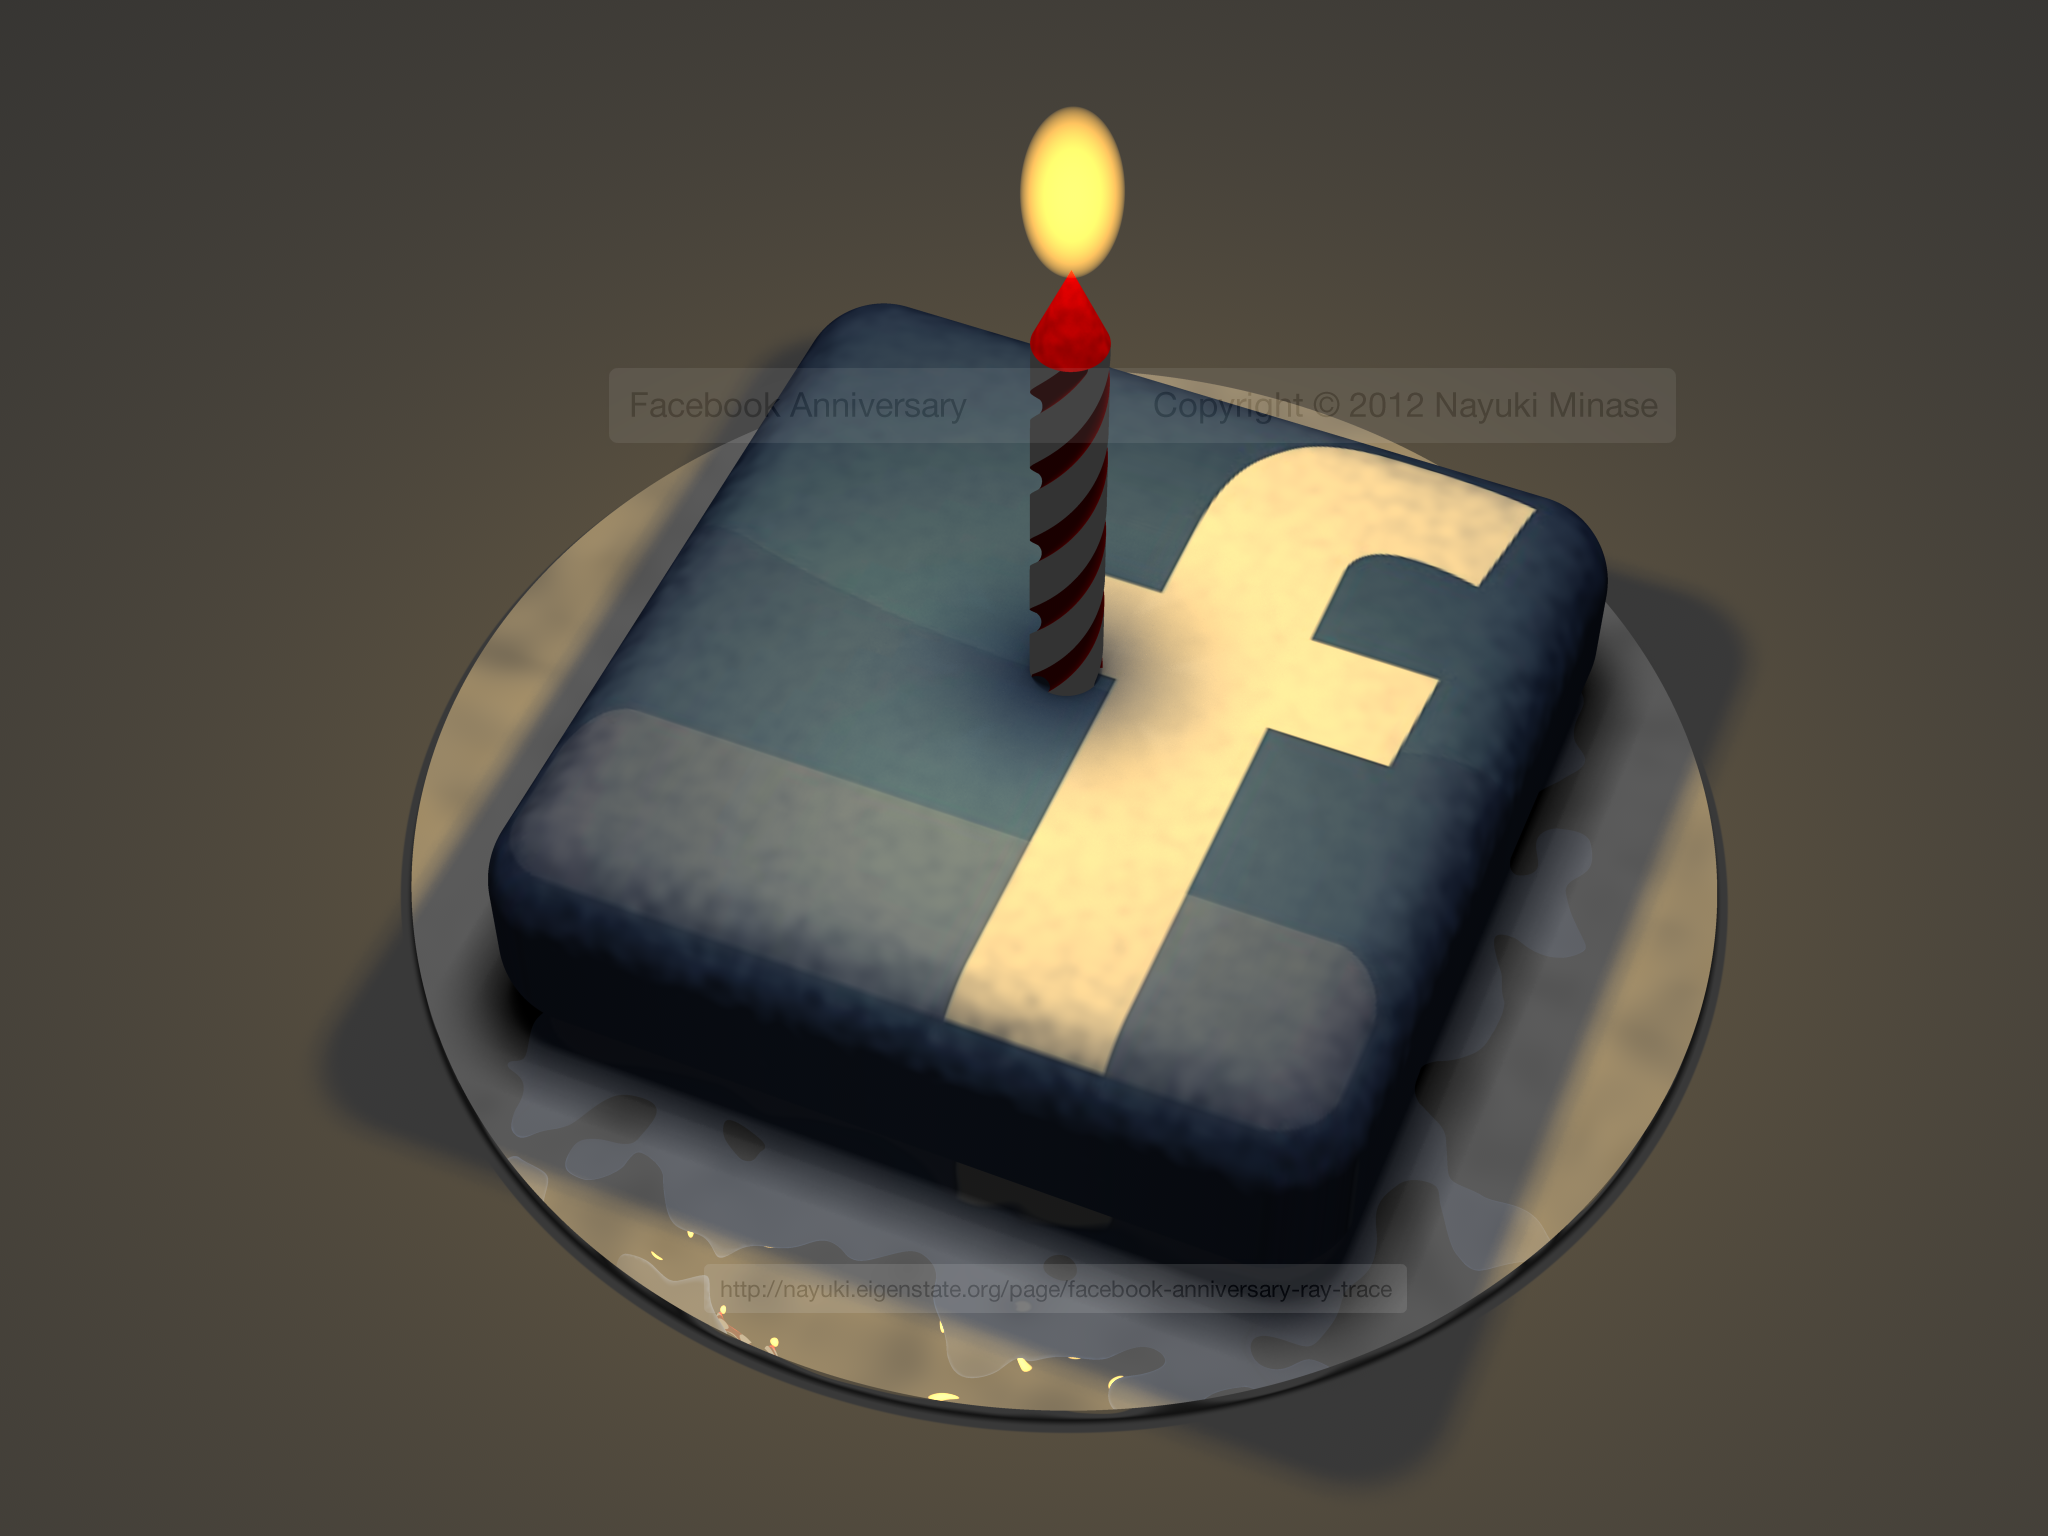 Birthday Cake Pictures To Facebook : Facebook anniversary ray trace